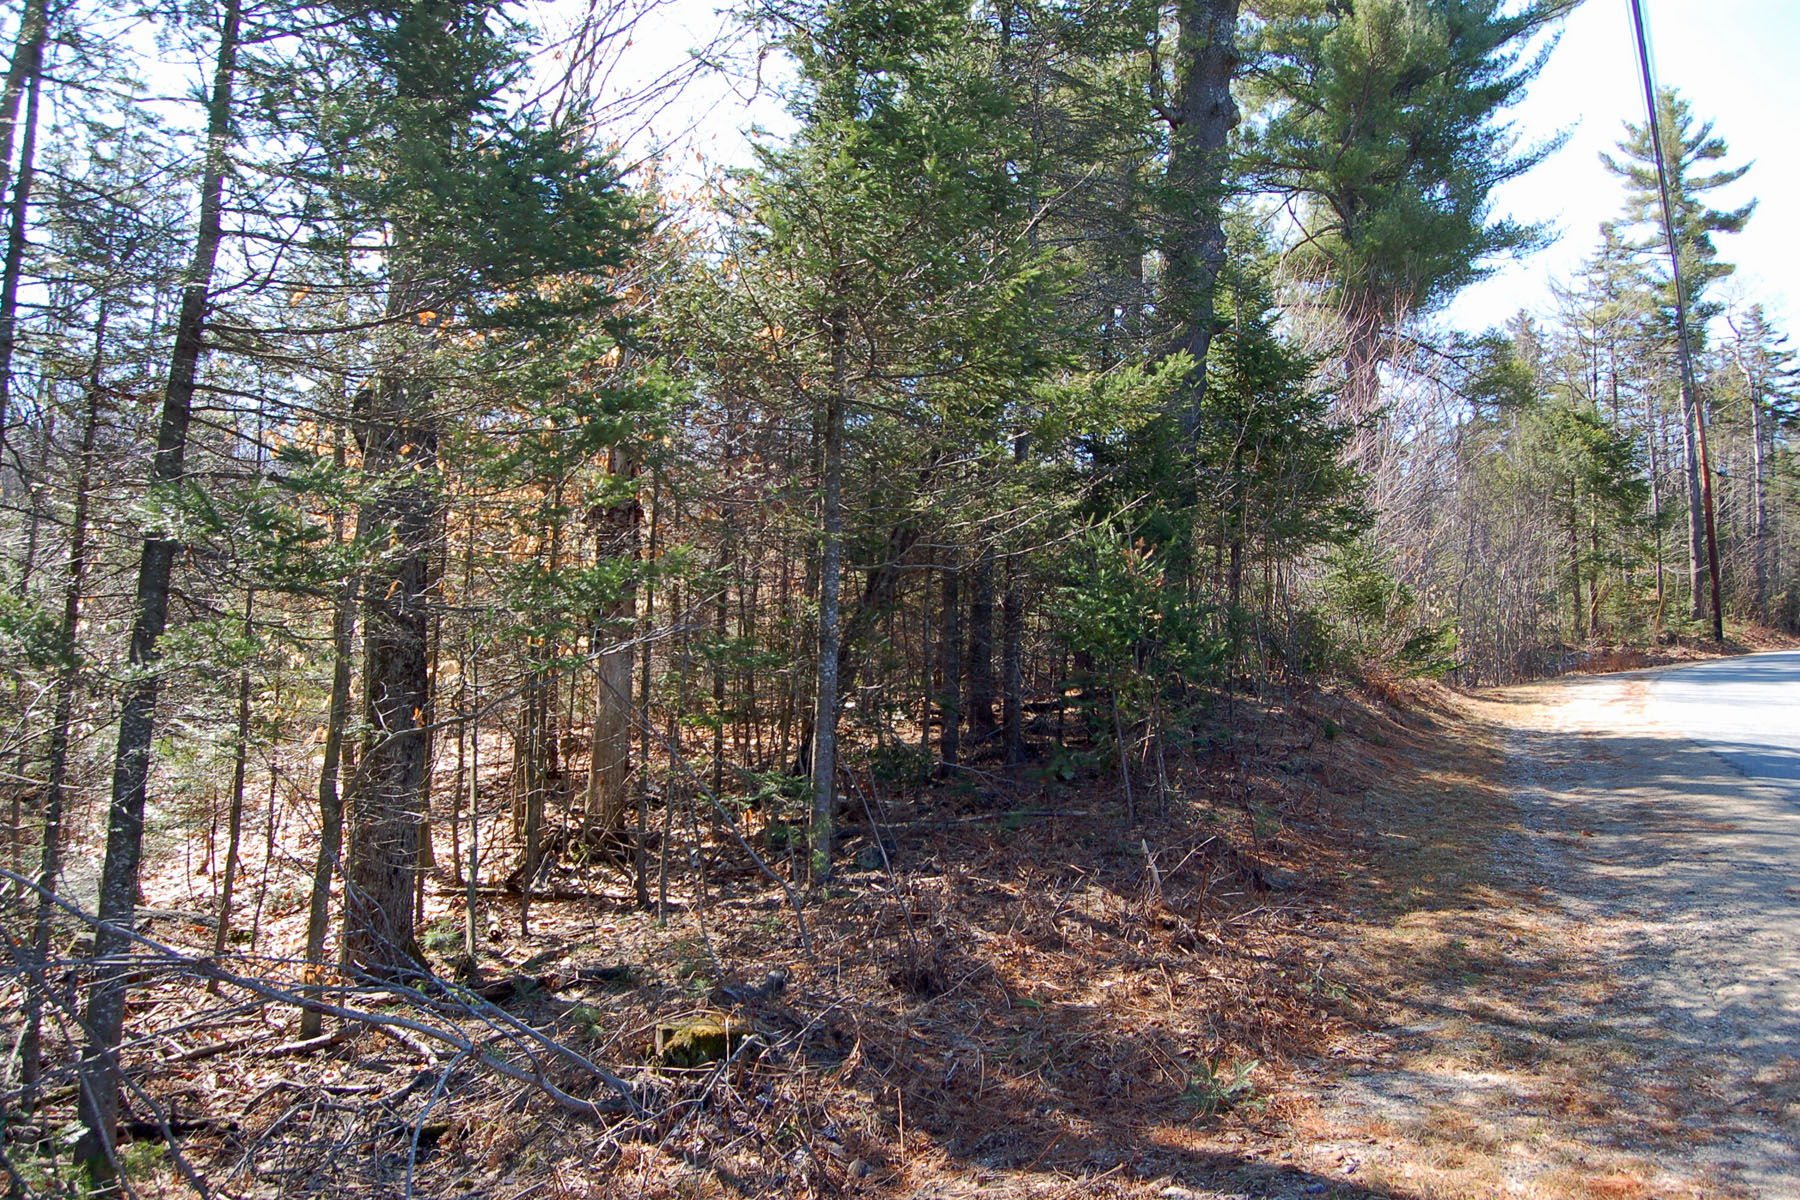 Terreno por un Venta en 5.1 Acre Building Lot 23 Summit Rd Sutton, Nueva Hampshire 03221 Estados Unidos